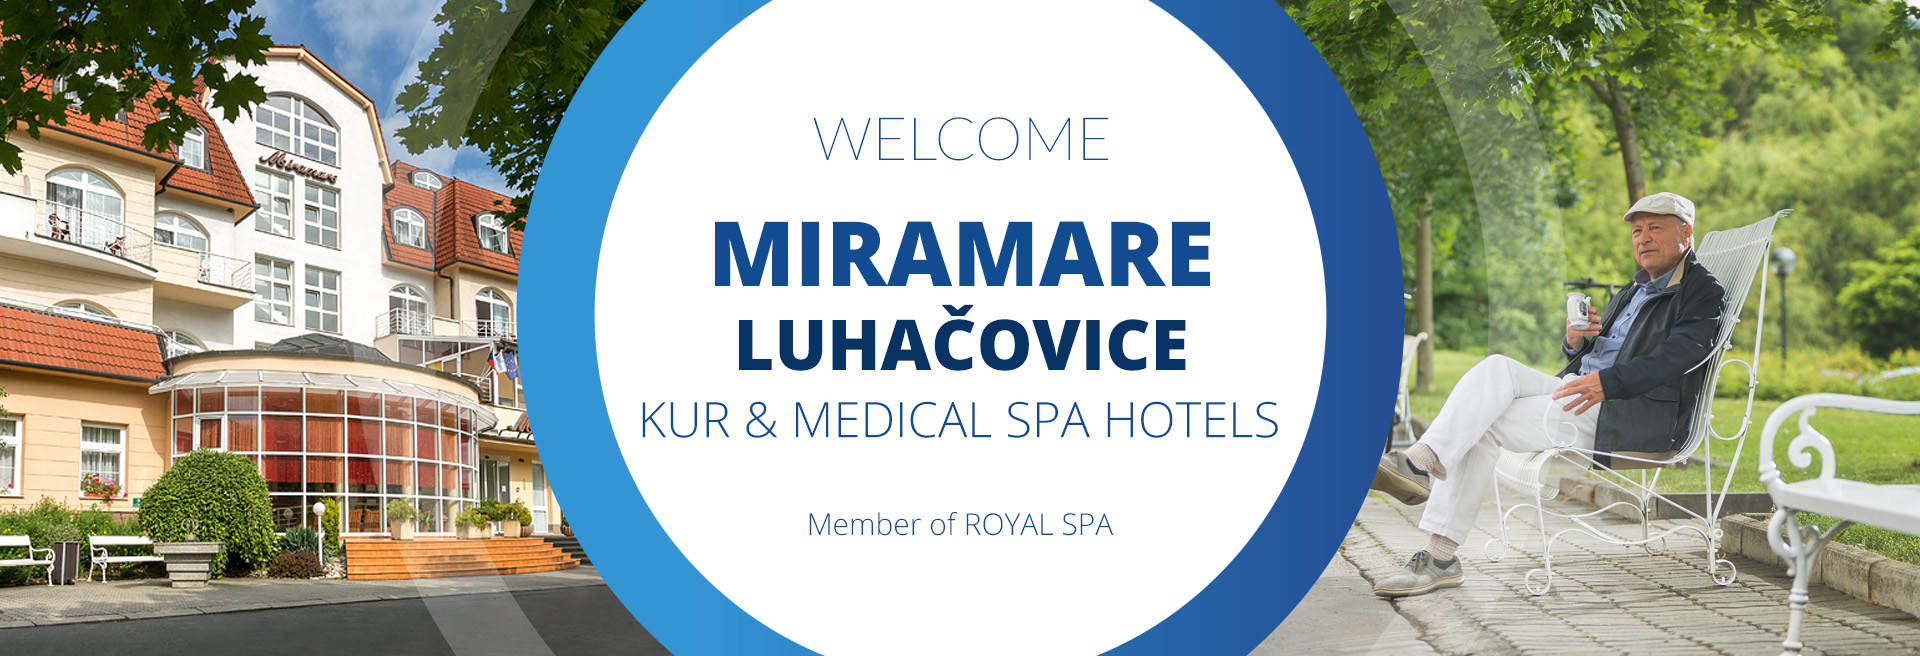 Offer of accommodation in Luhačovice Spa MIRAMARE